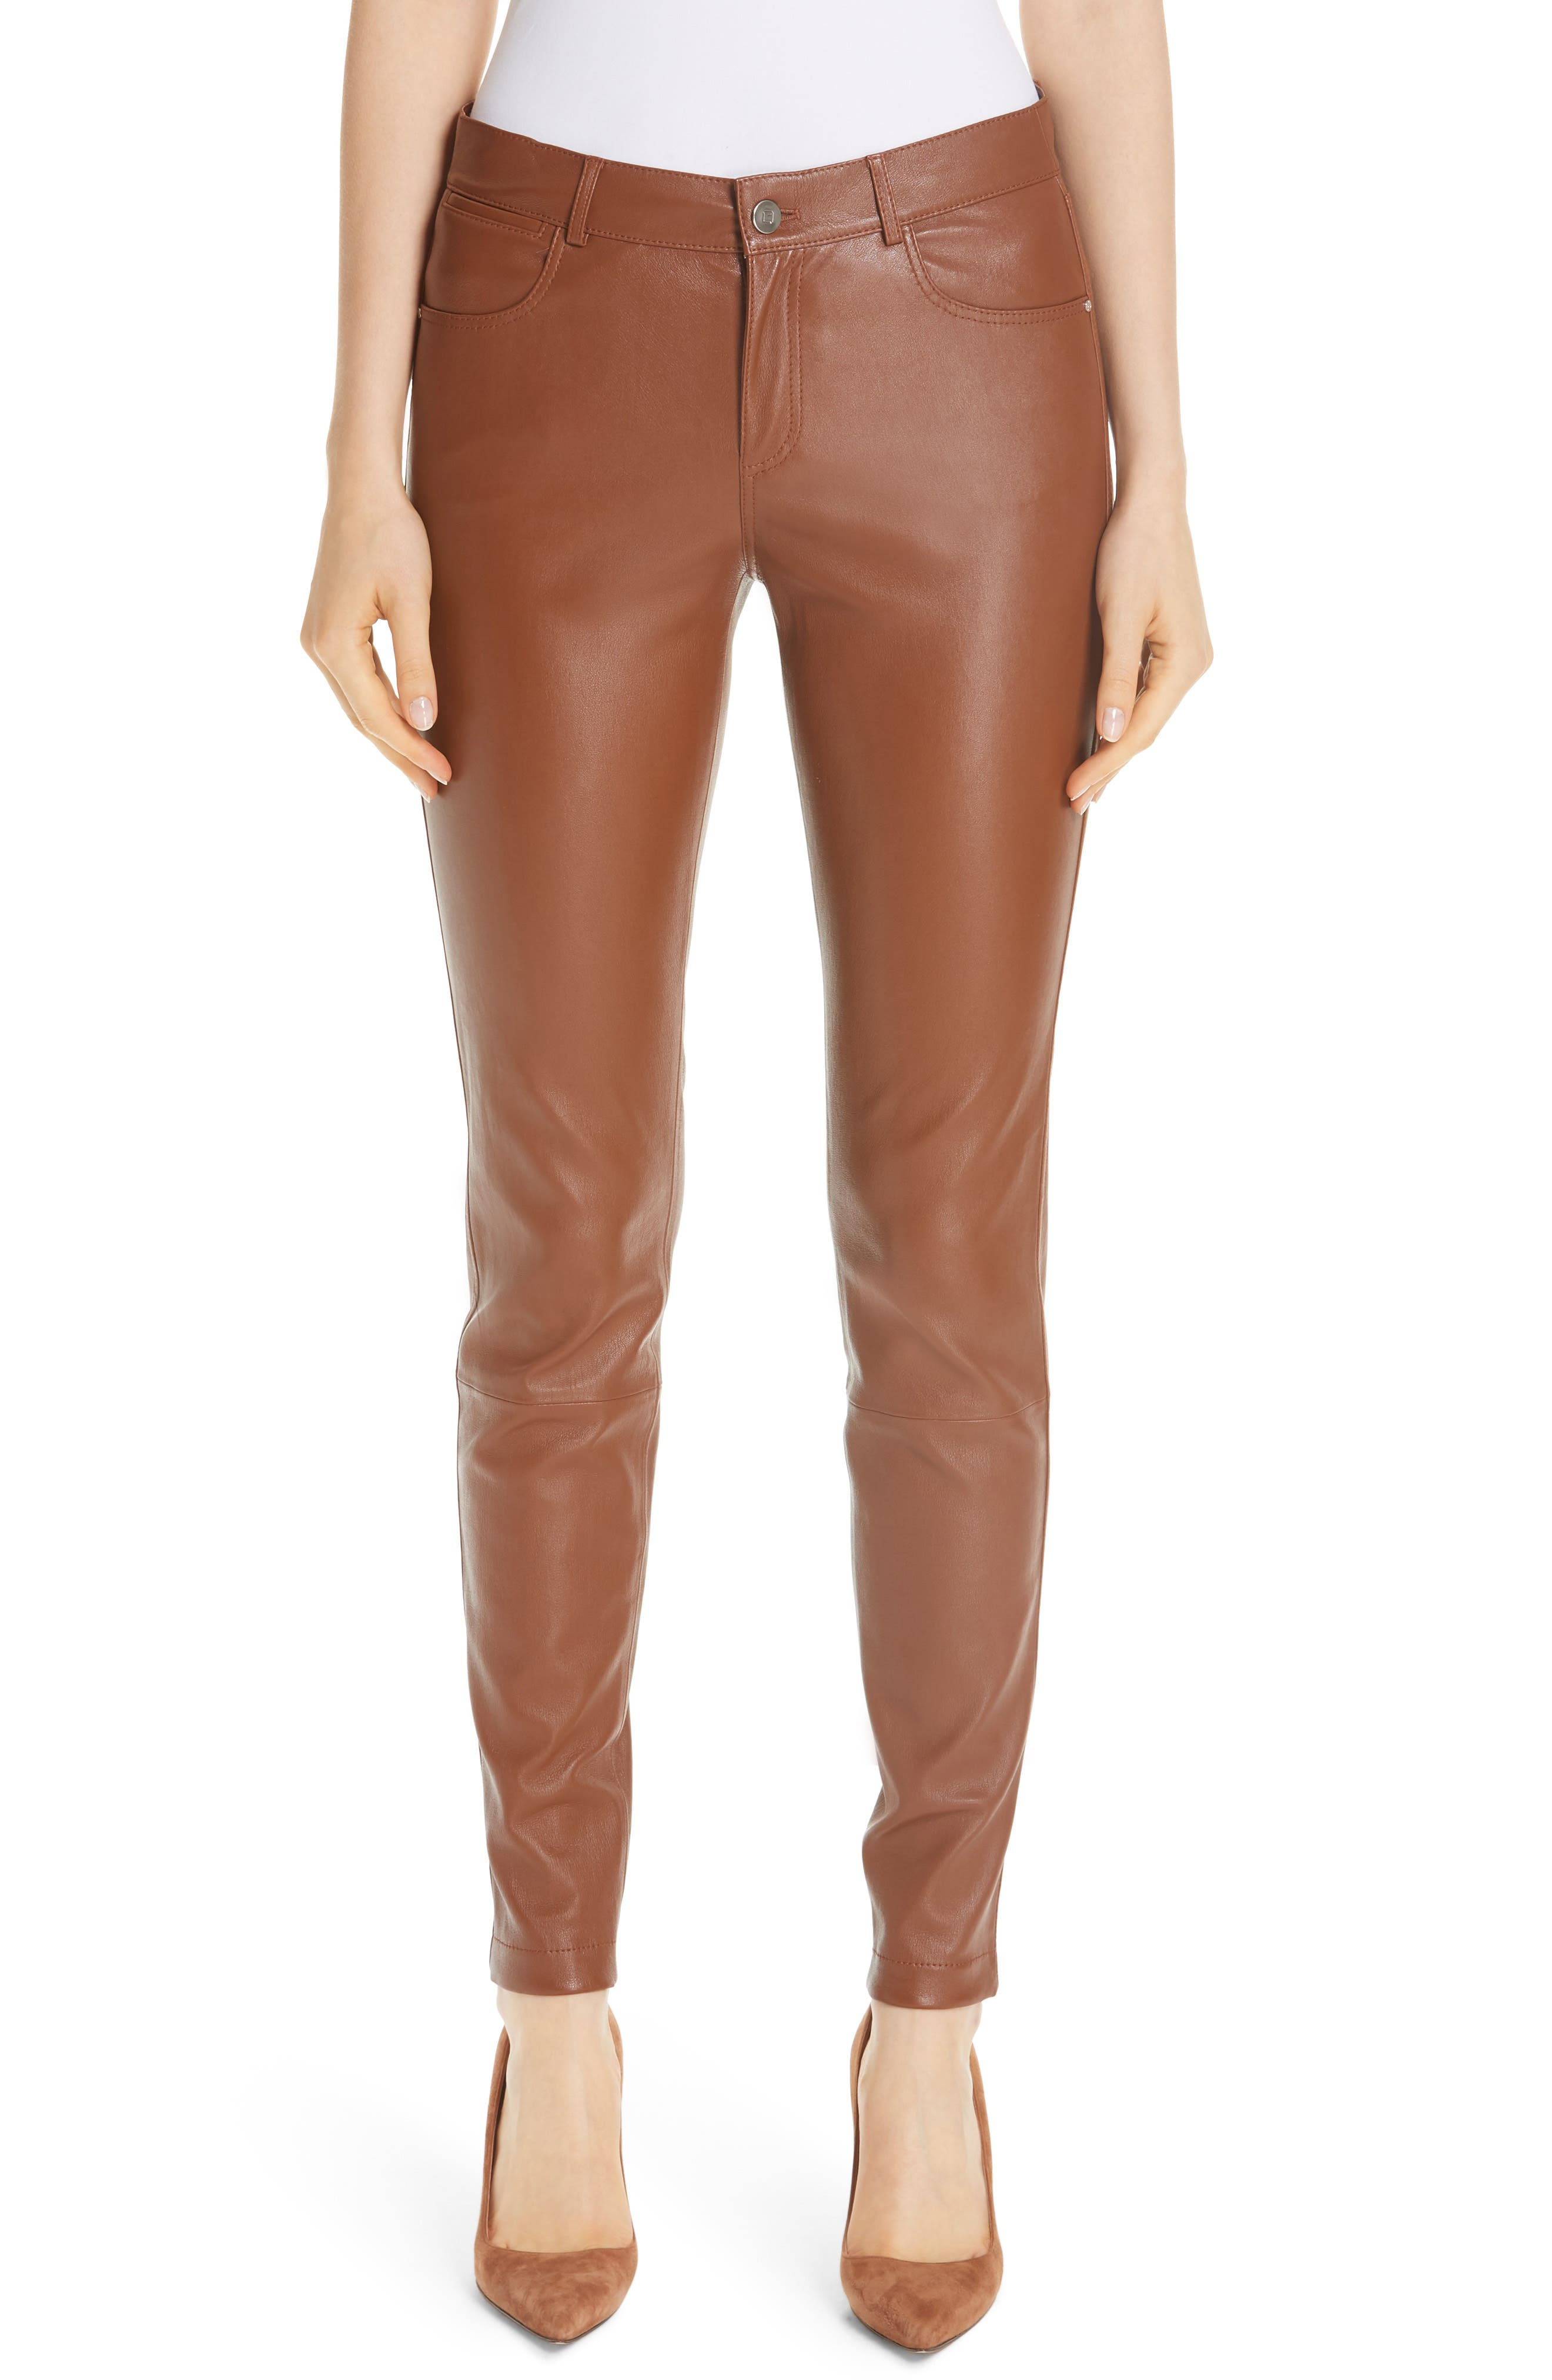 Mercer Nappa Leather Pants,                             Main thumbnail 1, color,                             VICUNA